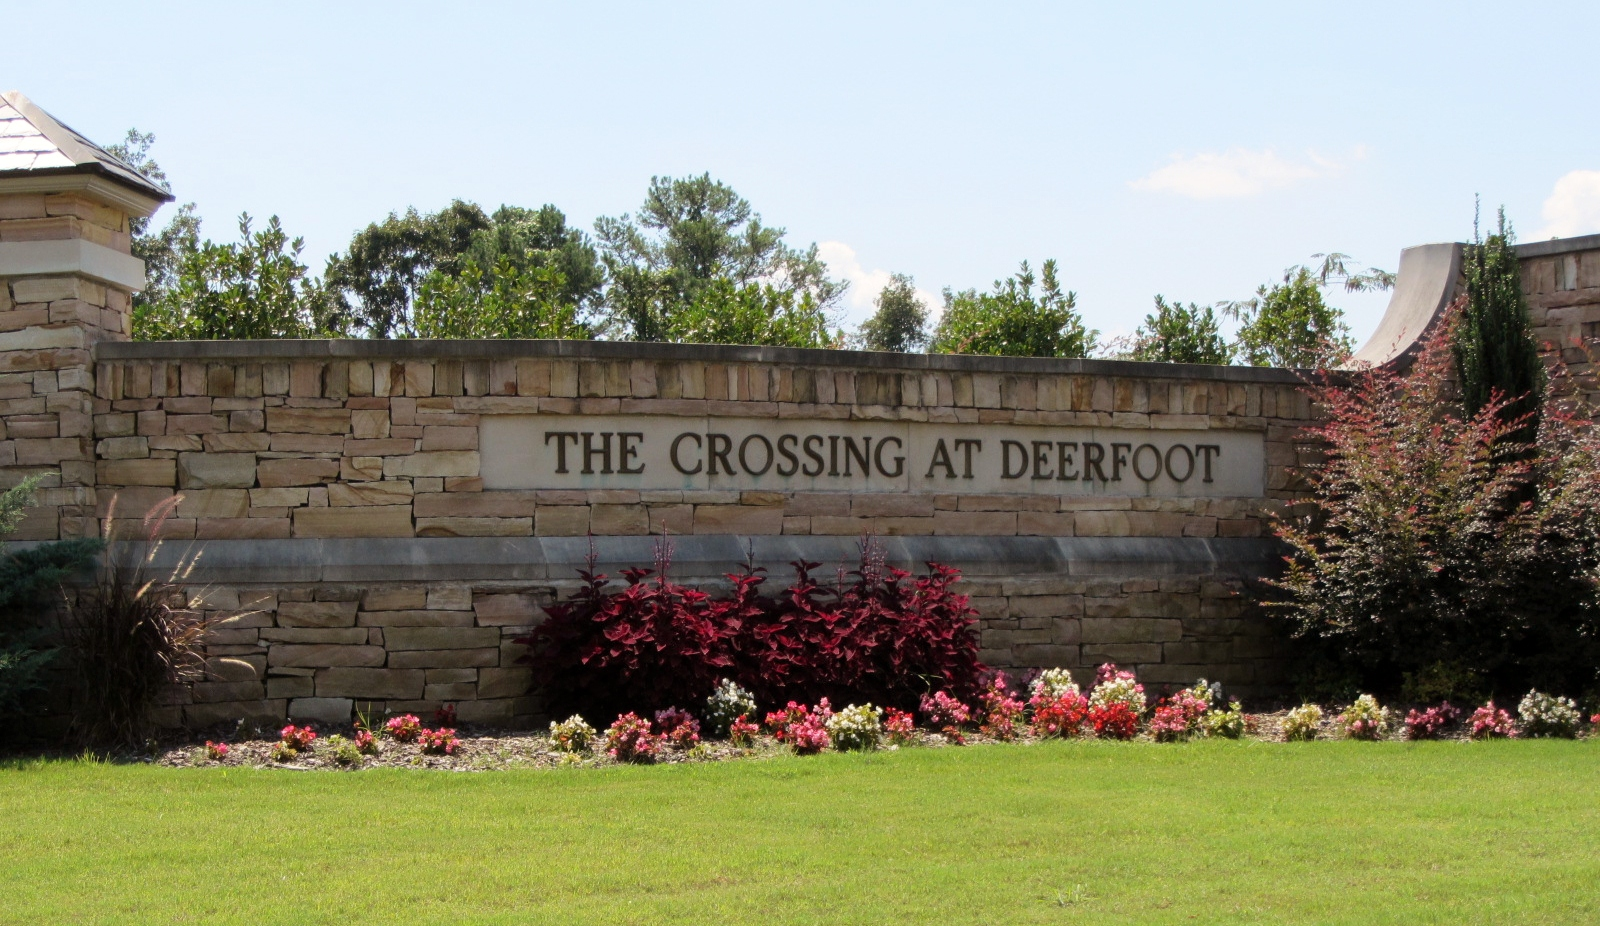 The Crossing at Deerfoot